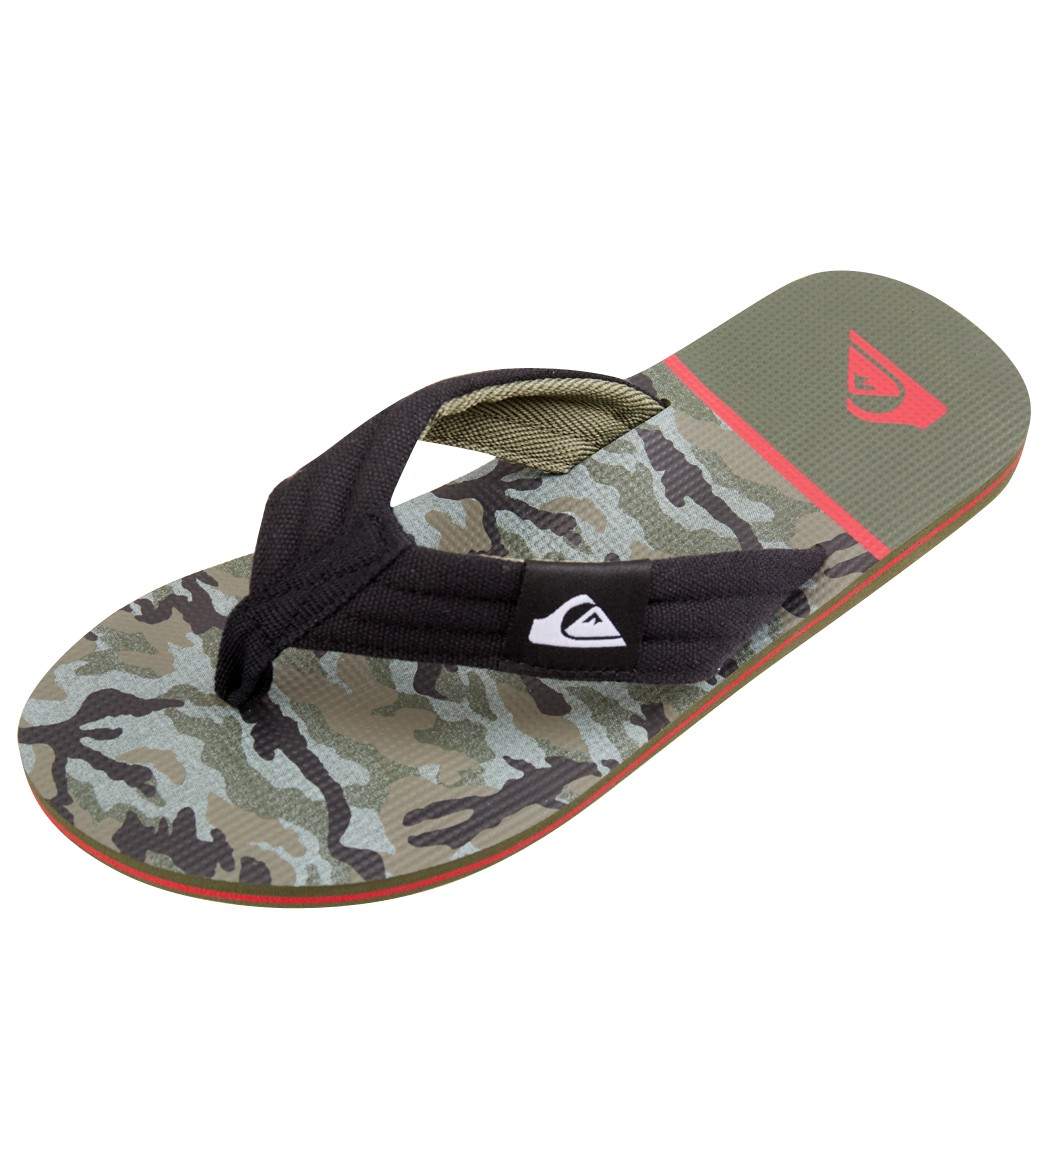 80221a778f3 Quiksilver Youth s Molokai Layback Flip Flop at SwimOutlet.com